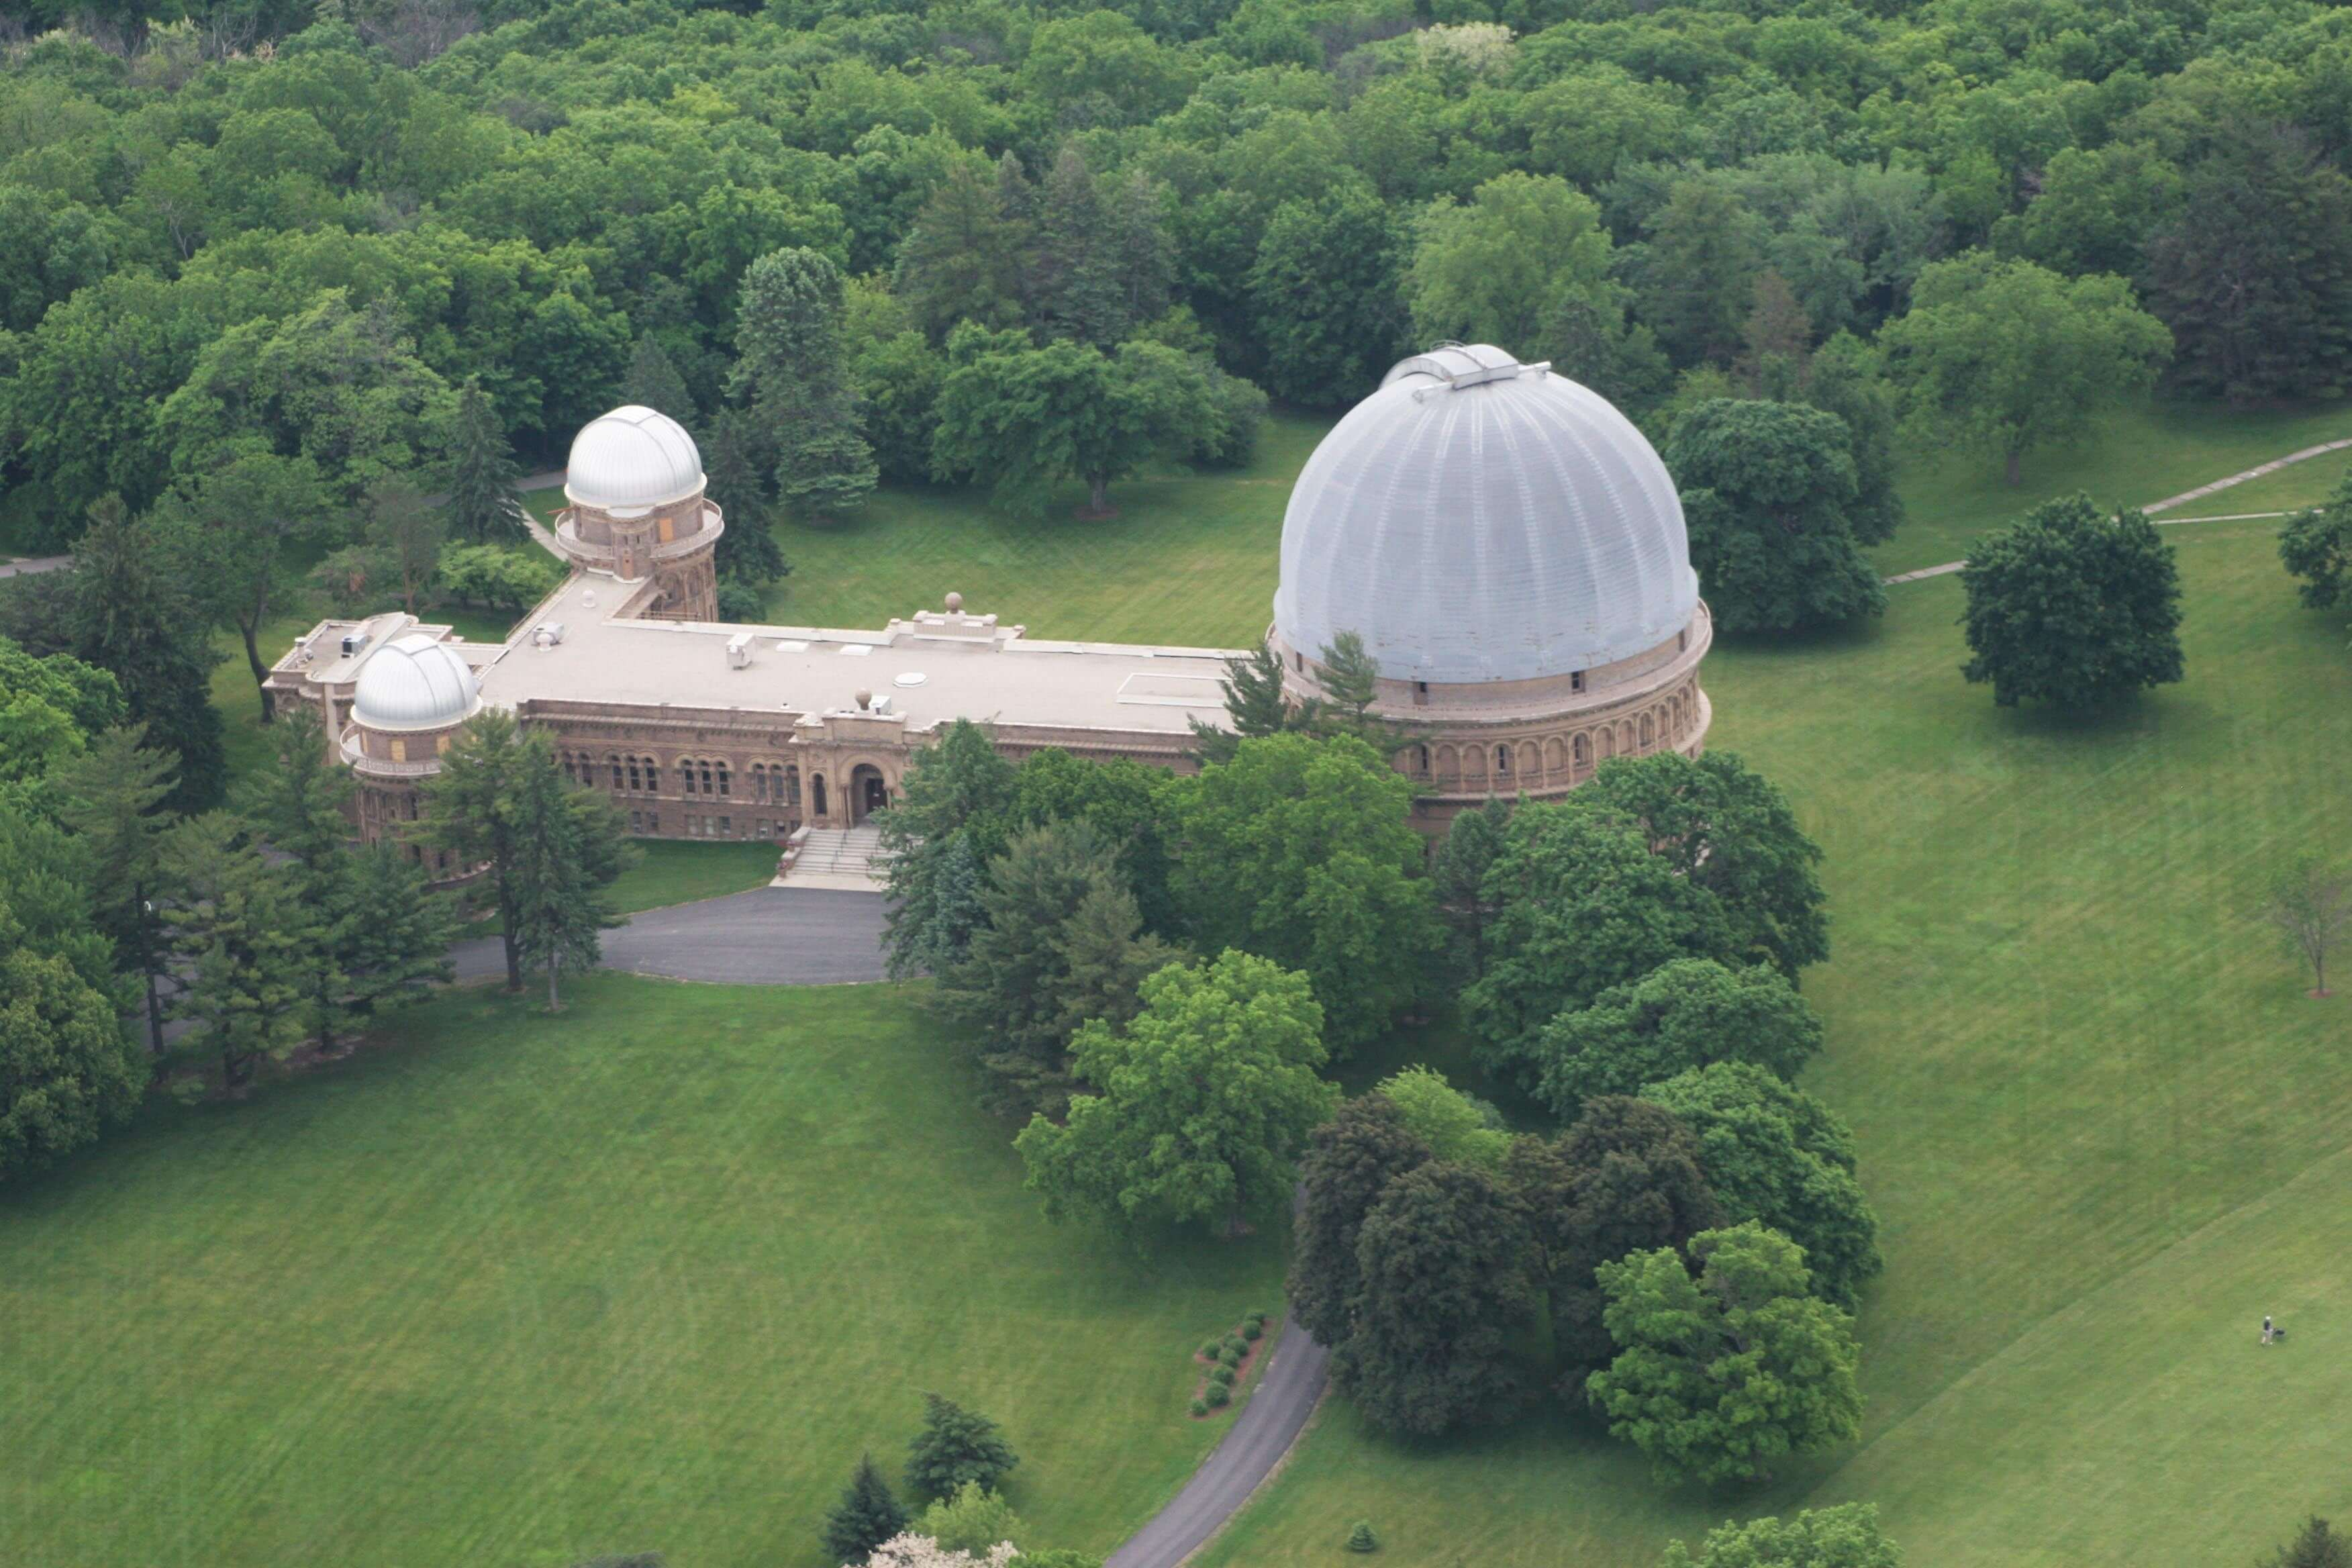 Restoration Yerkes Observatory, Williams Bay WI